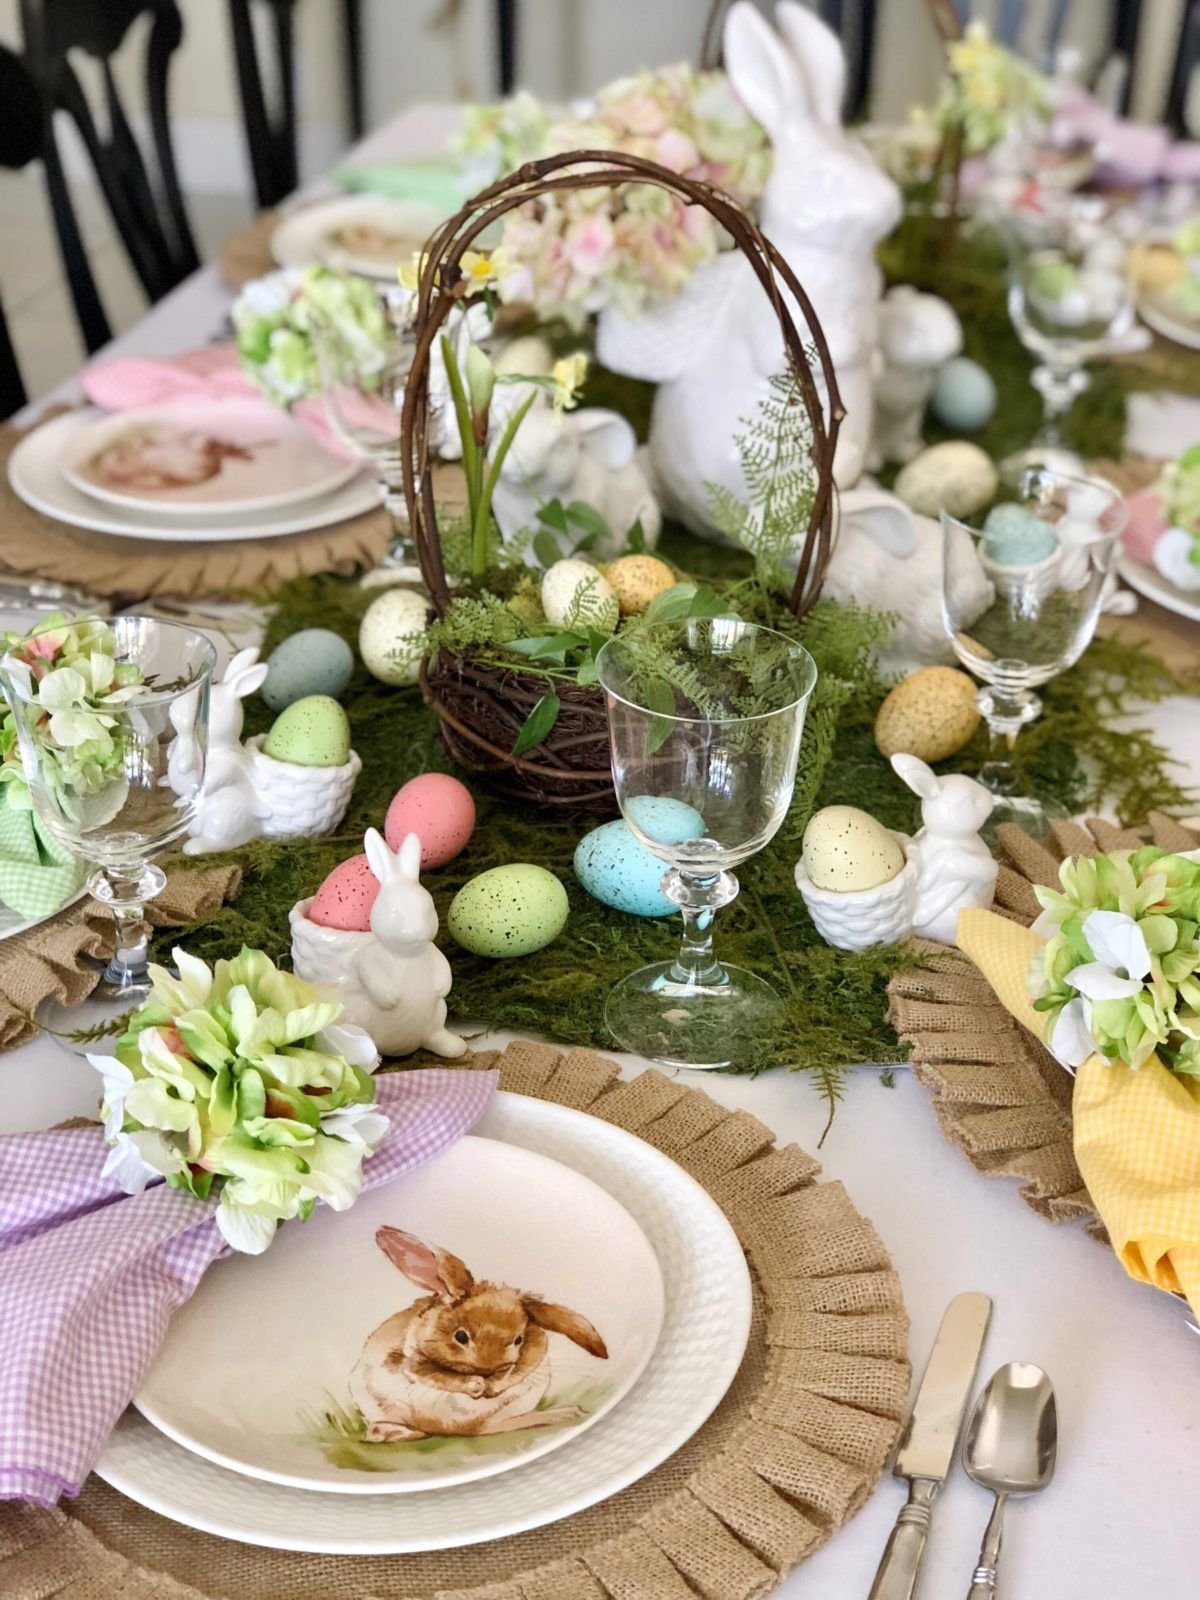 Festive Easter Tablescape The Preppy Hostess Easter Table Decorations Easter Table Settings Easter Centerpieces